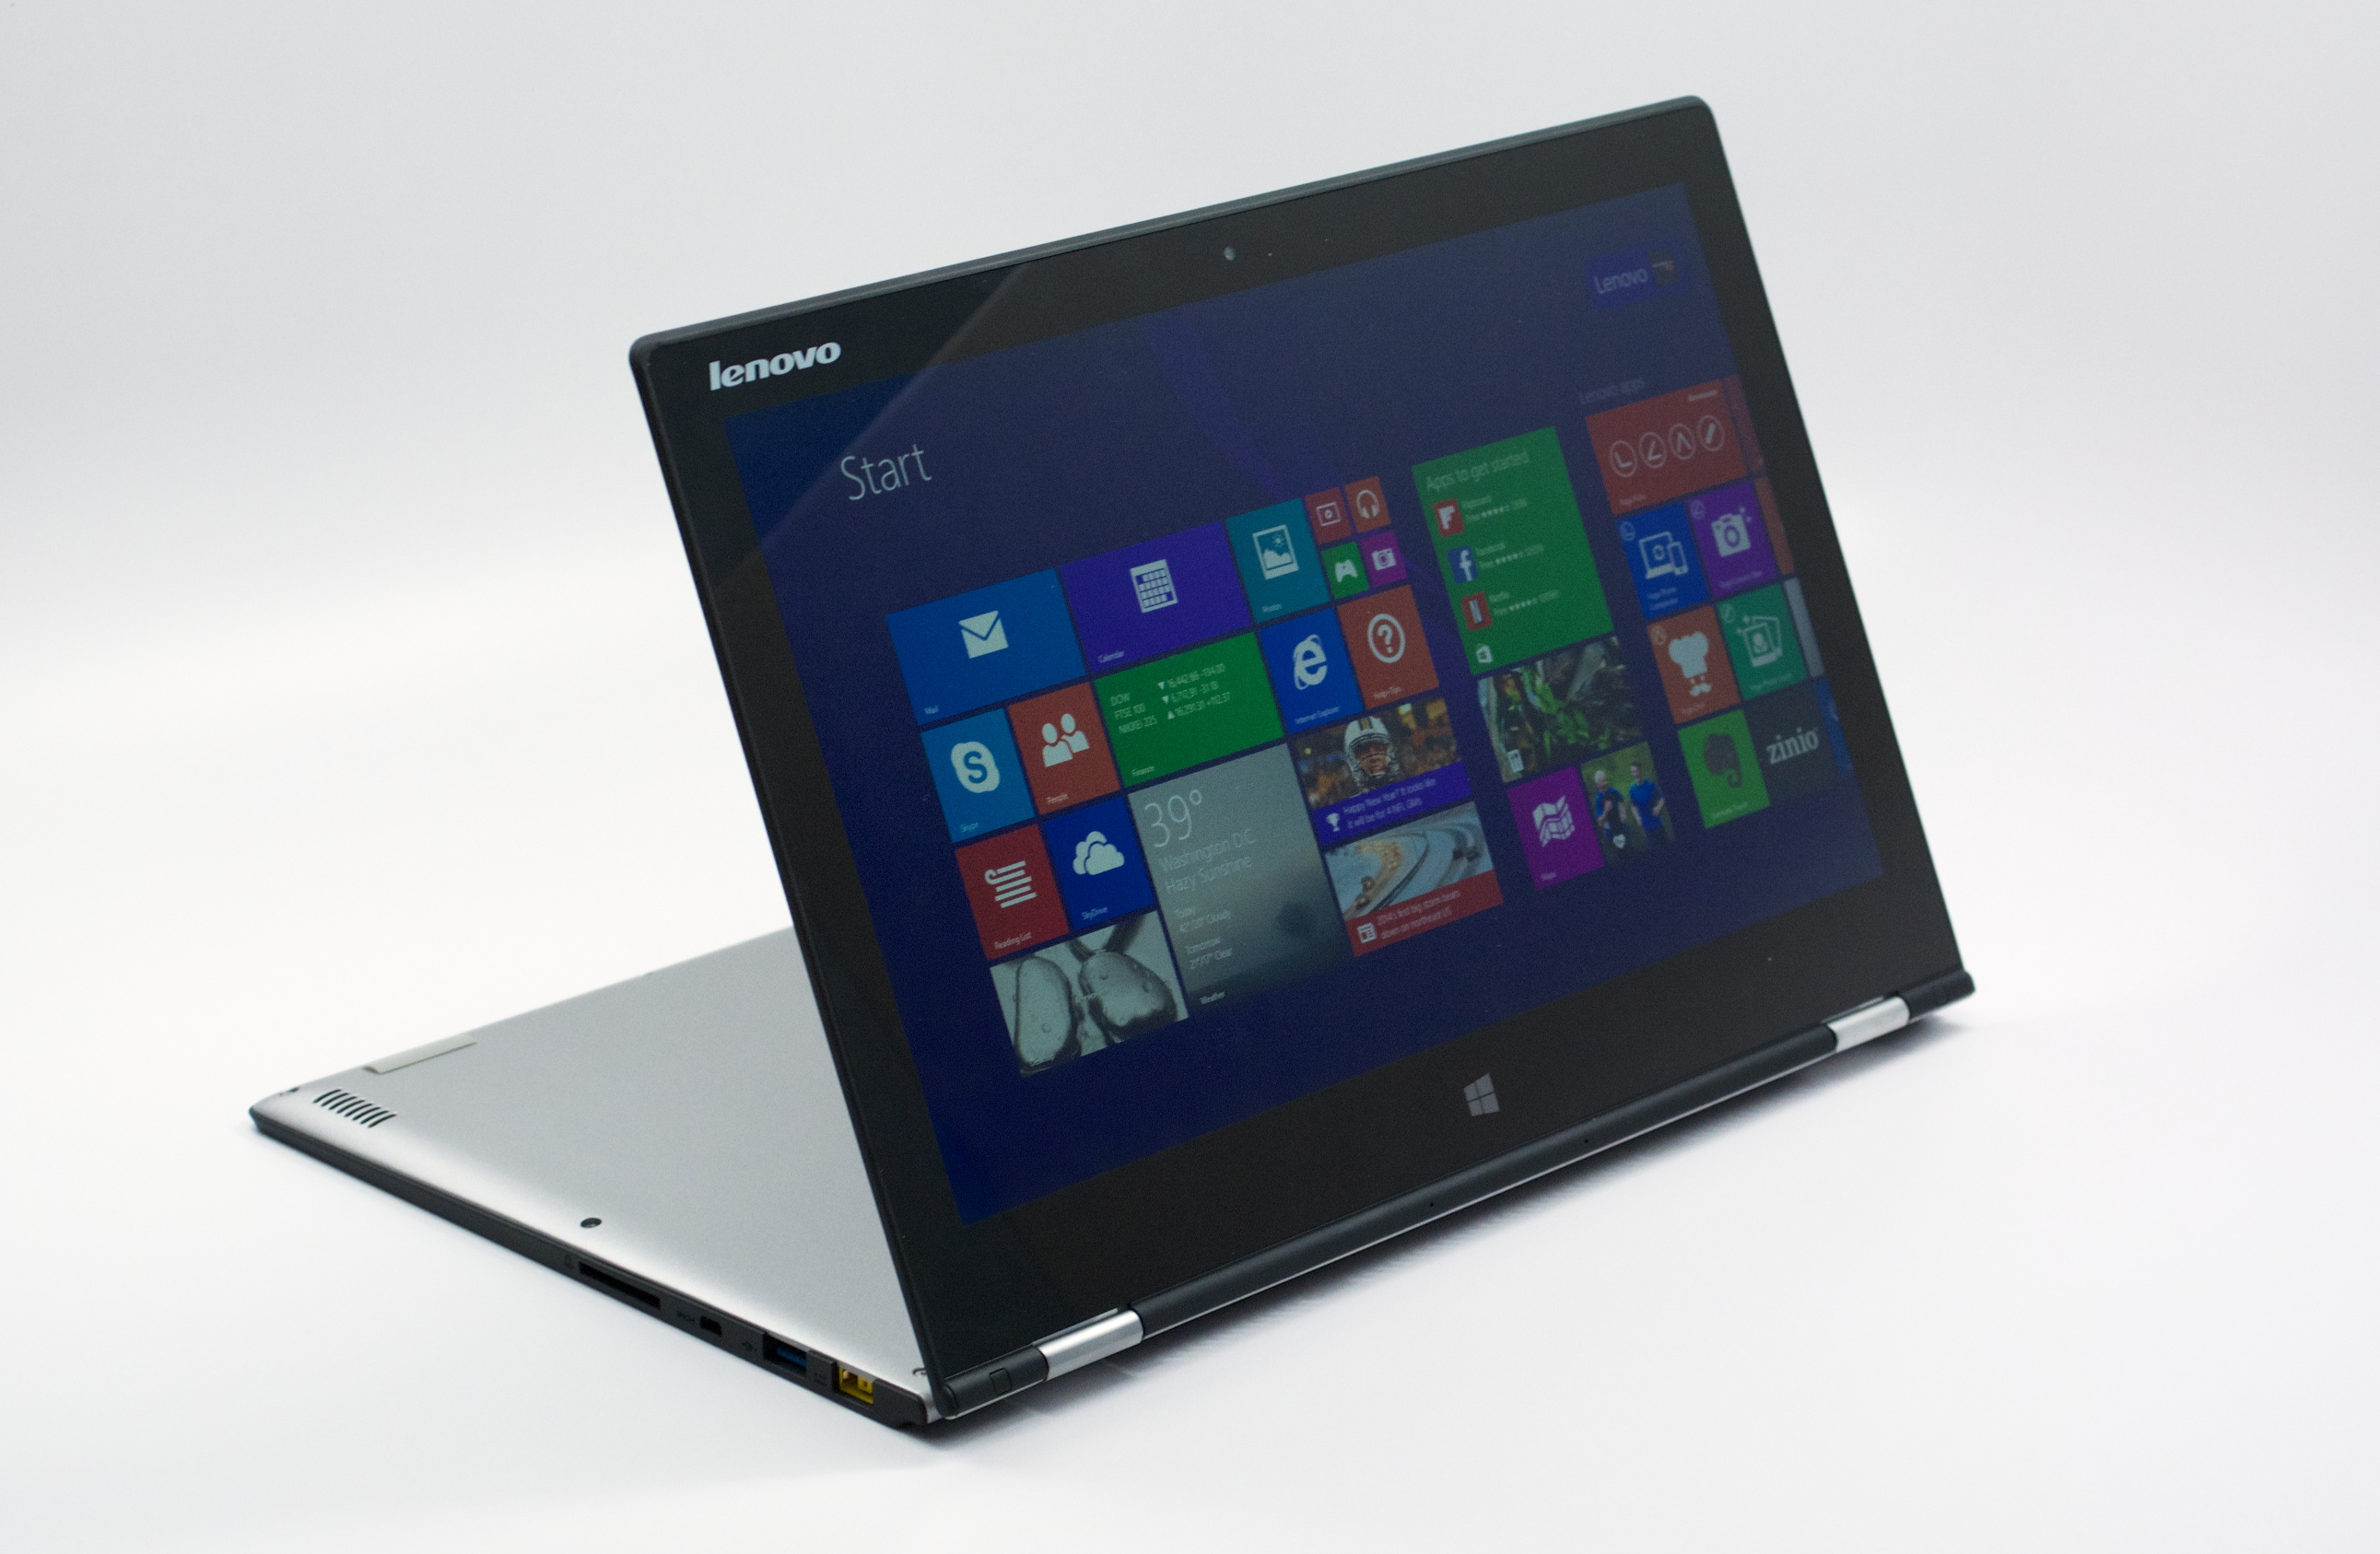 The Yoga 2 Pro includes a 3,200 x 1,800 resolution display.